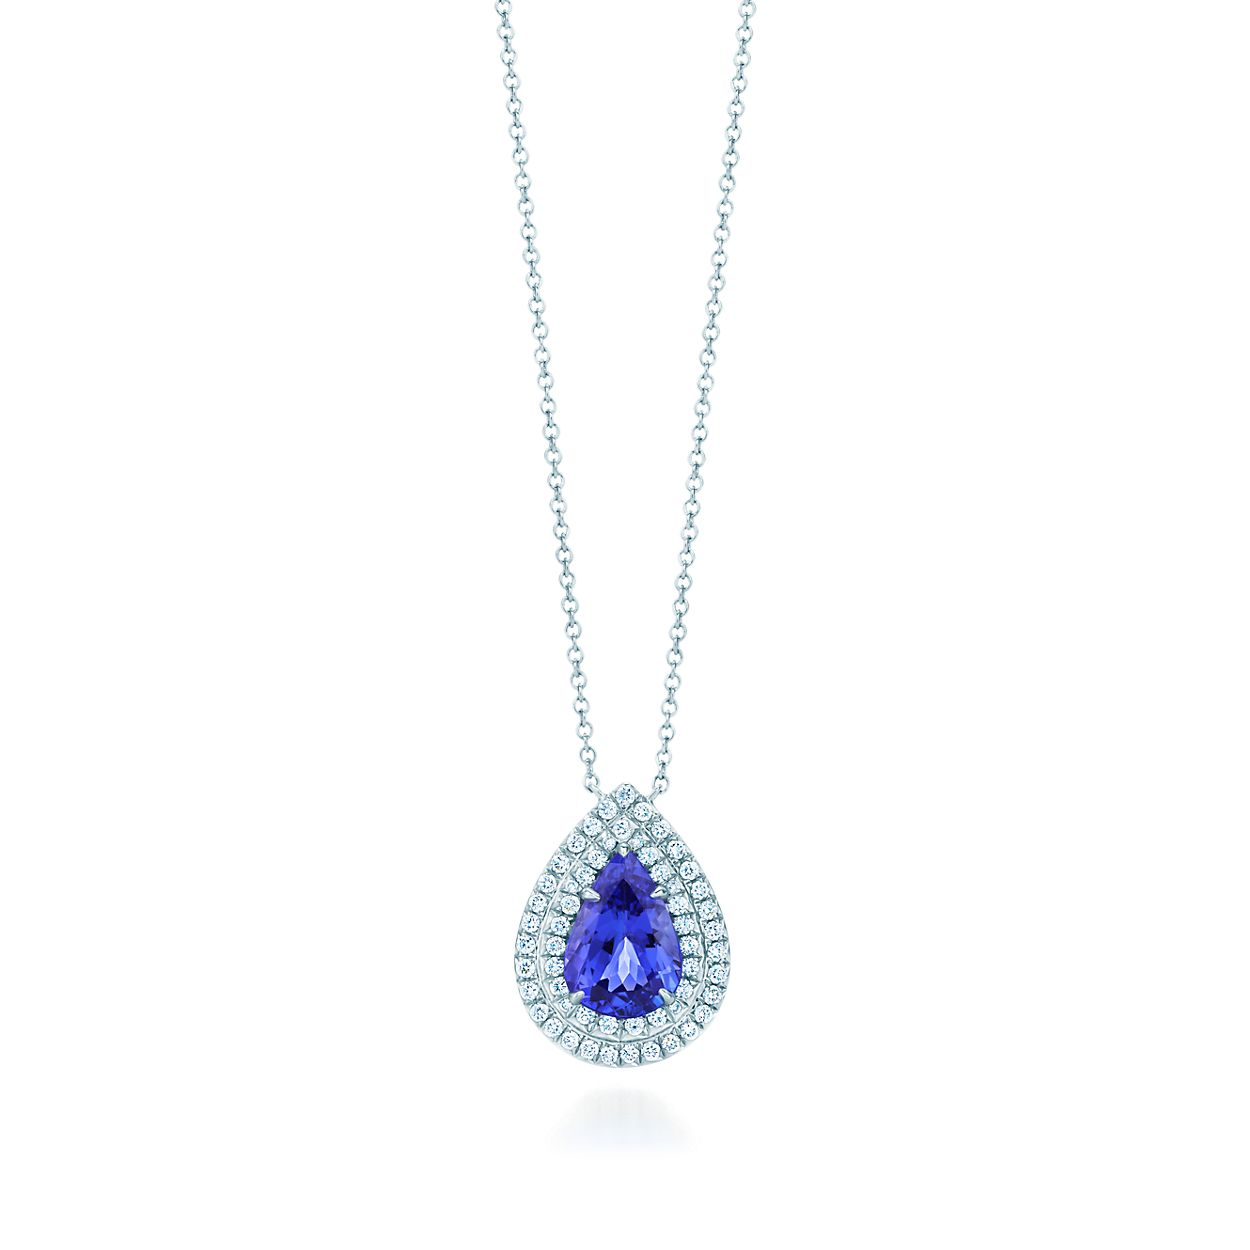 haute scale coveted company joaillerie har of tiffany tanzanite stone se promoted new by gemstones york angle aura our became and thus blue exceptional most chopard bejeweled life one was gemstone upscale false necklace crop times subsampling based the